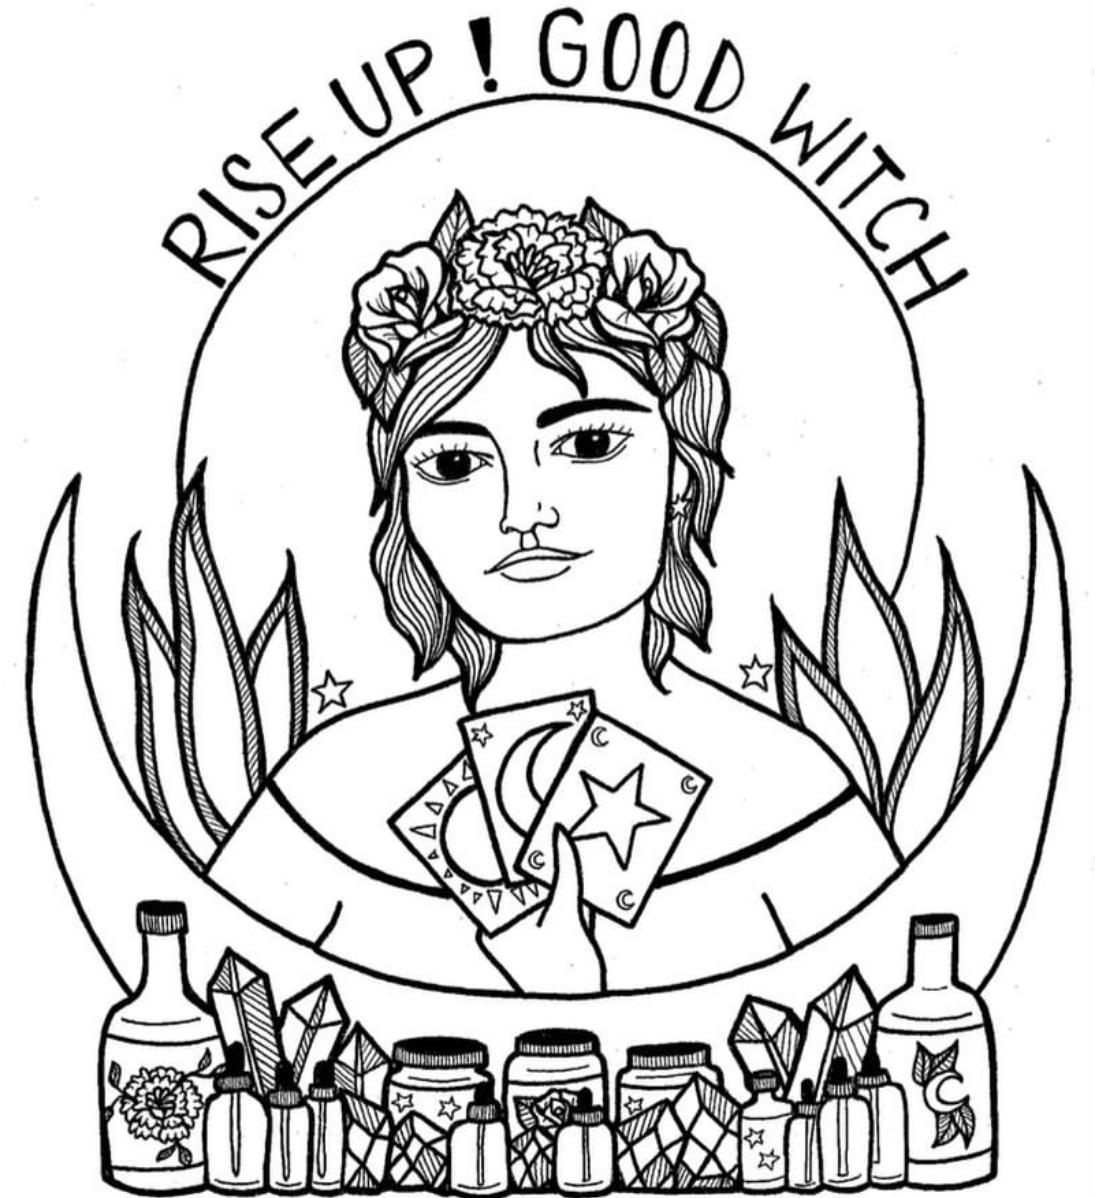 Rise Up Good Witch - Tarot Readings + Plant Witchery